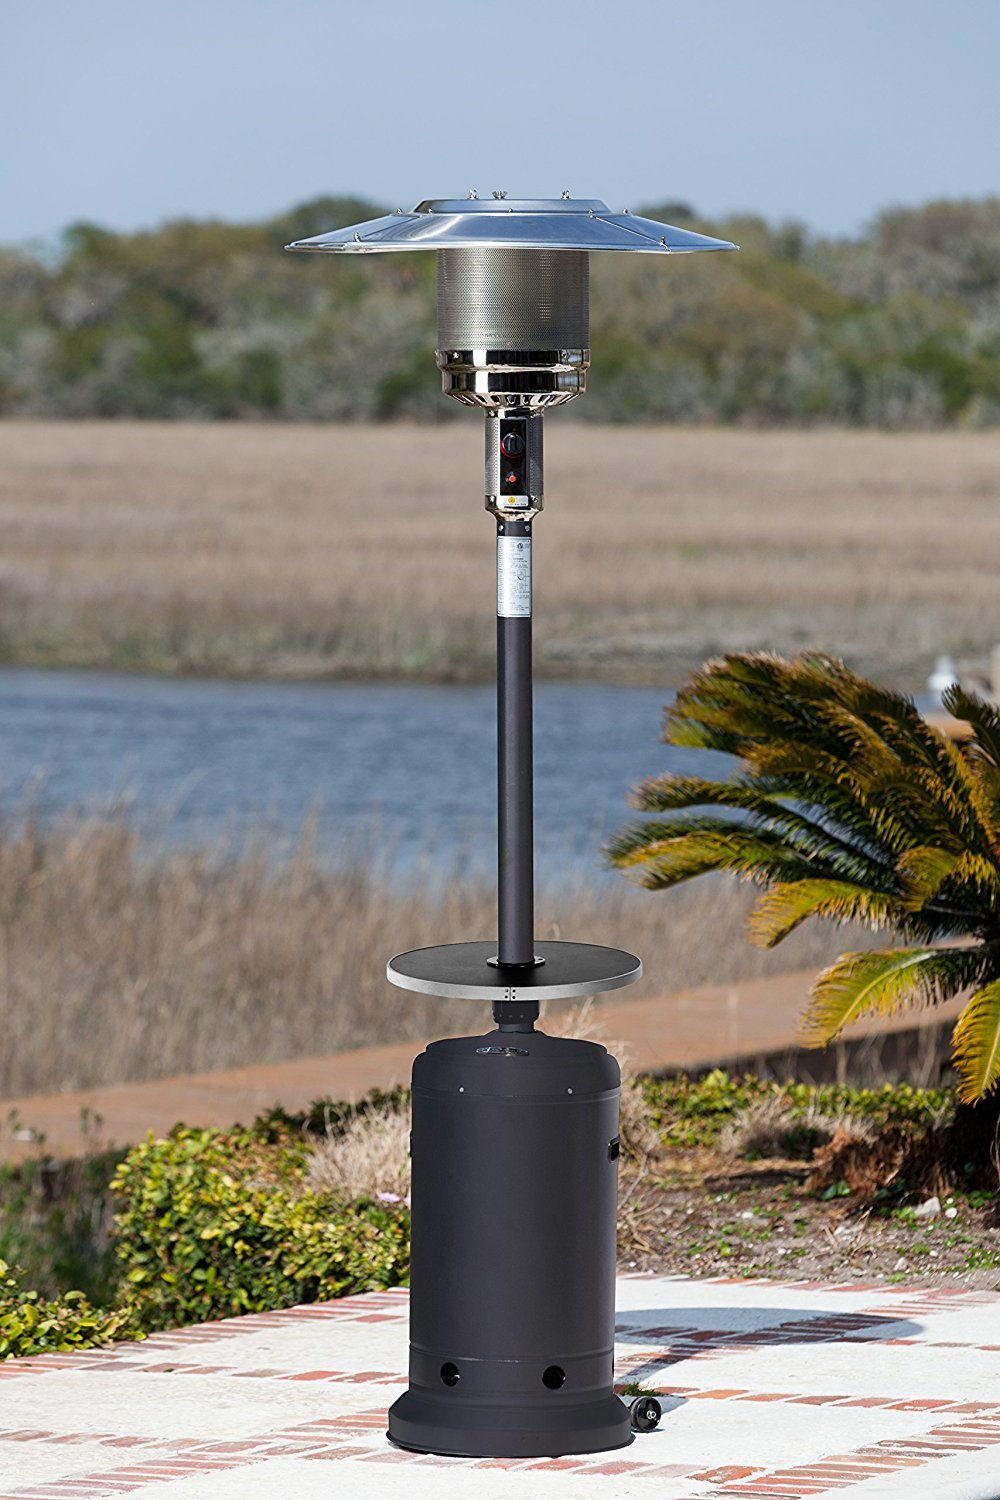 Exceptionnel Golden Flame 46,000 BTU [XL Series] Matte Black Patio Heater W/Drink Table  And Wheels (Propane)